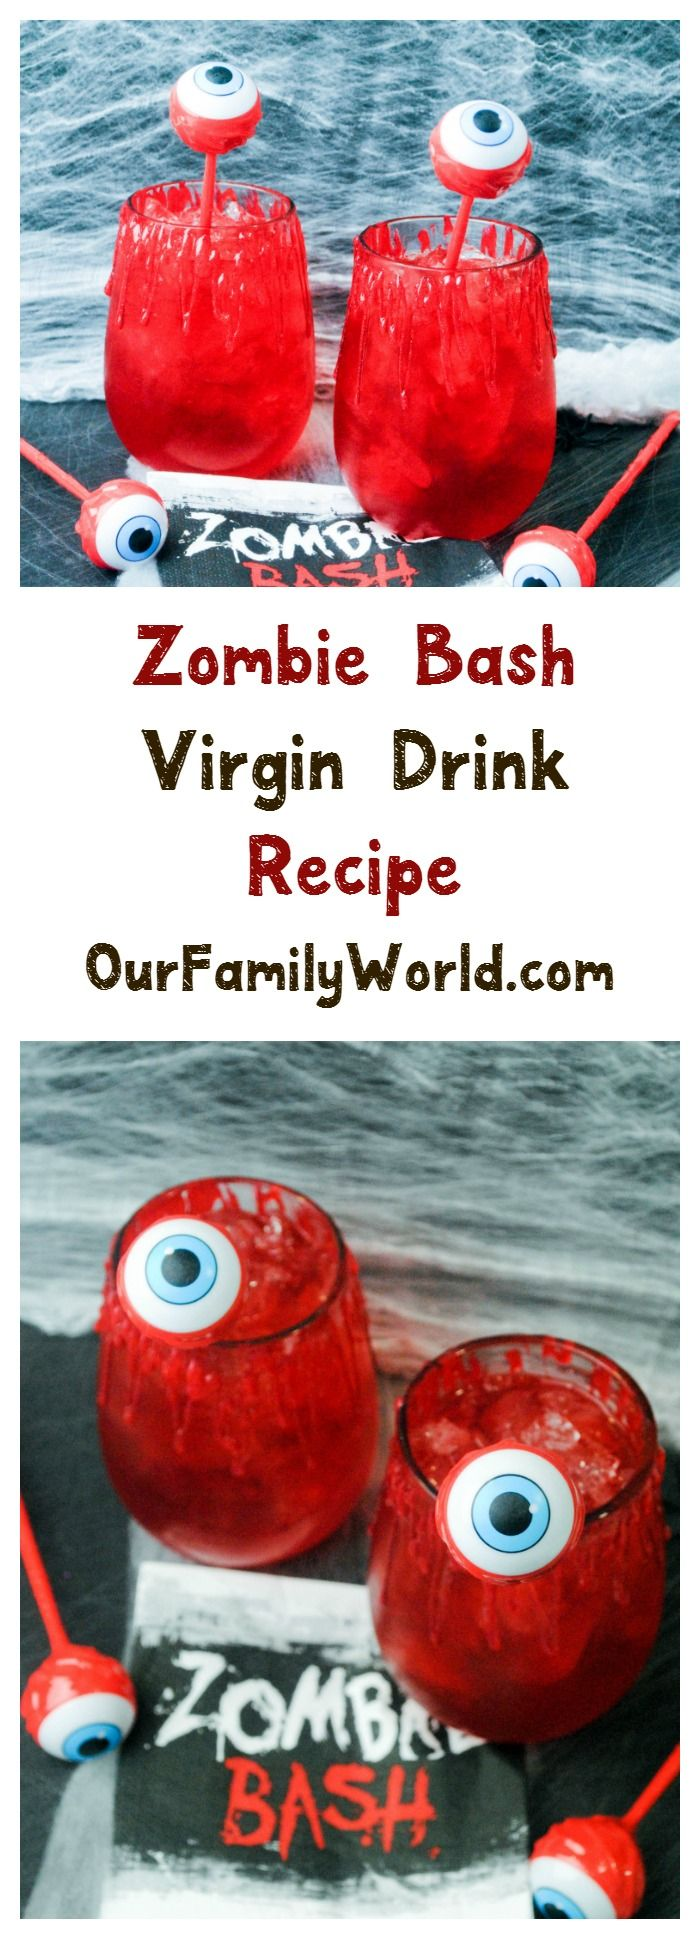 Looking for great Halloween drinks? Check out this yummy non alcoholic drink that's just perfect for your Monster party!